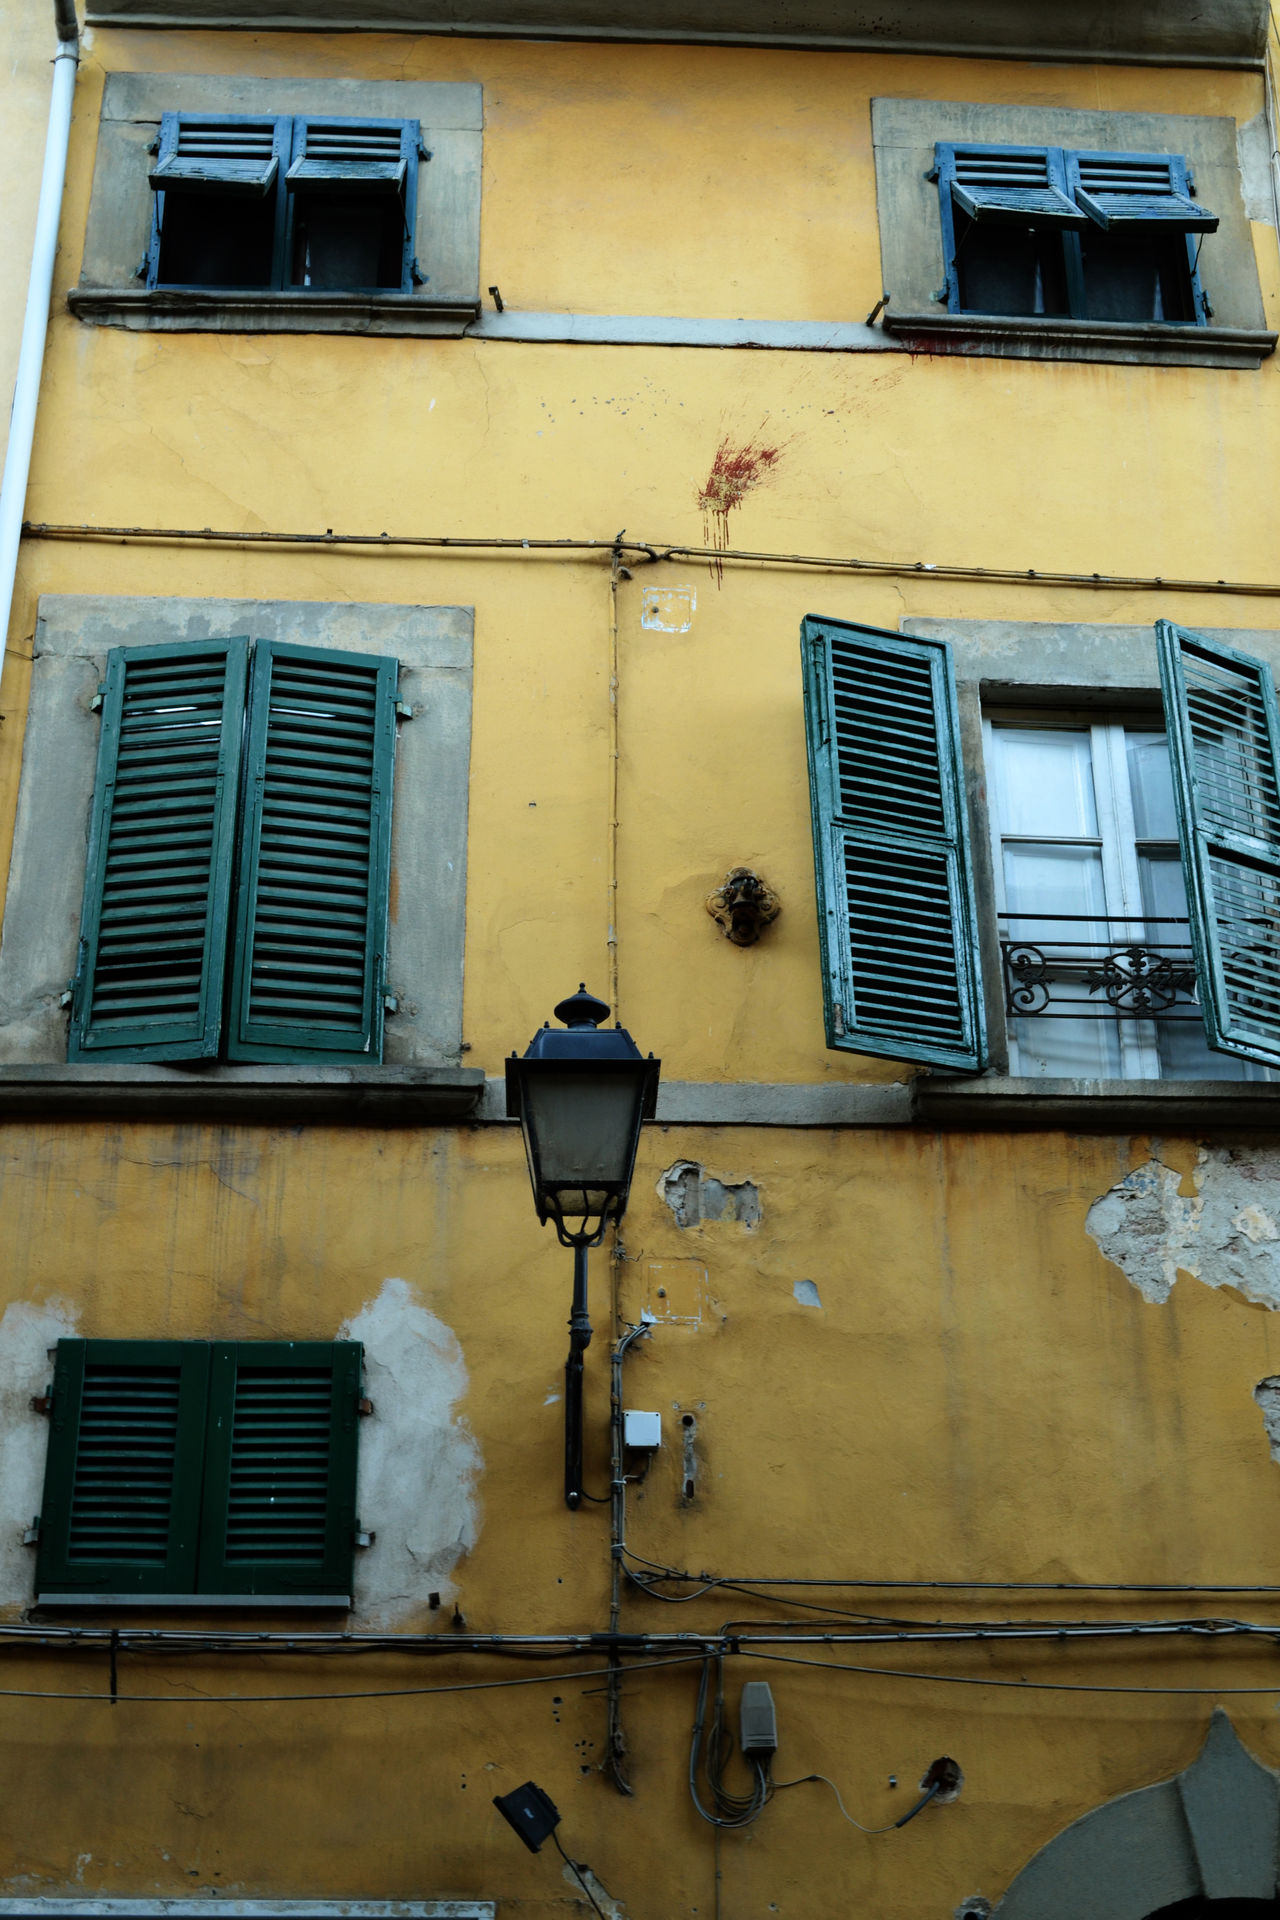 Building Close-up Damaged Detail Everyday Life Exploring Tuscany No People Old Pattern Rustic Rusty Streetphotography Textured  Tuscany Urban Wall Wall - Building Feature Windows Greetings From Italy